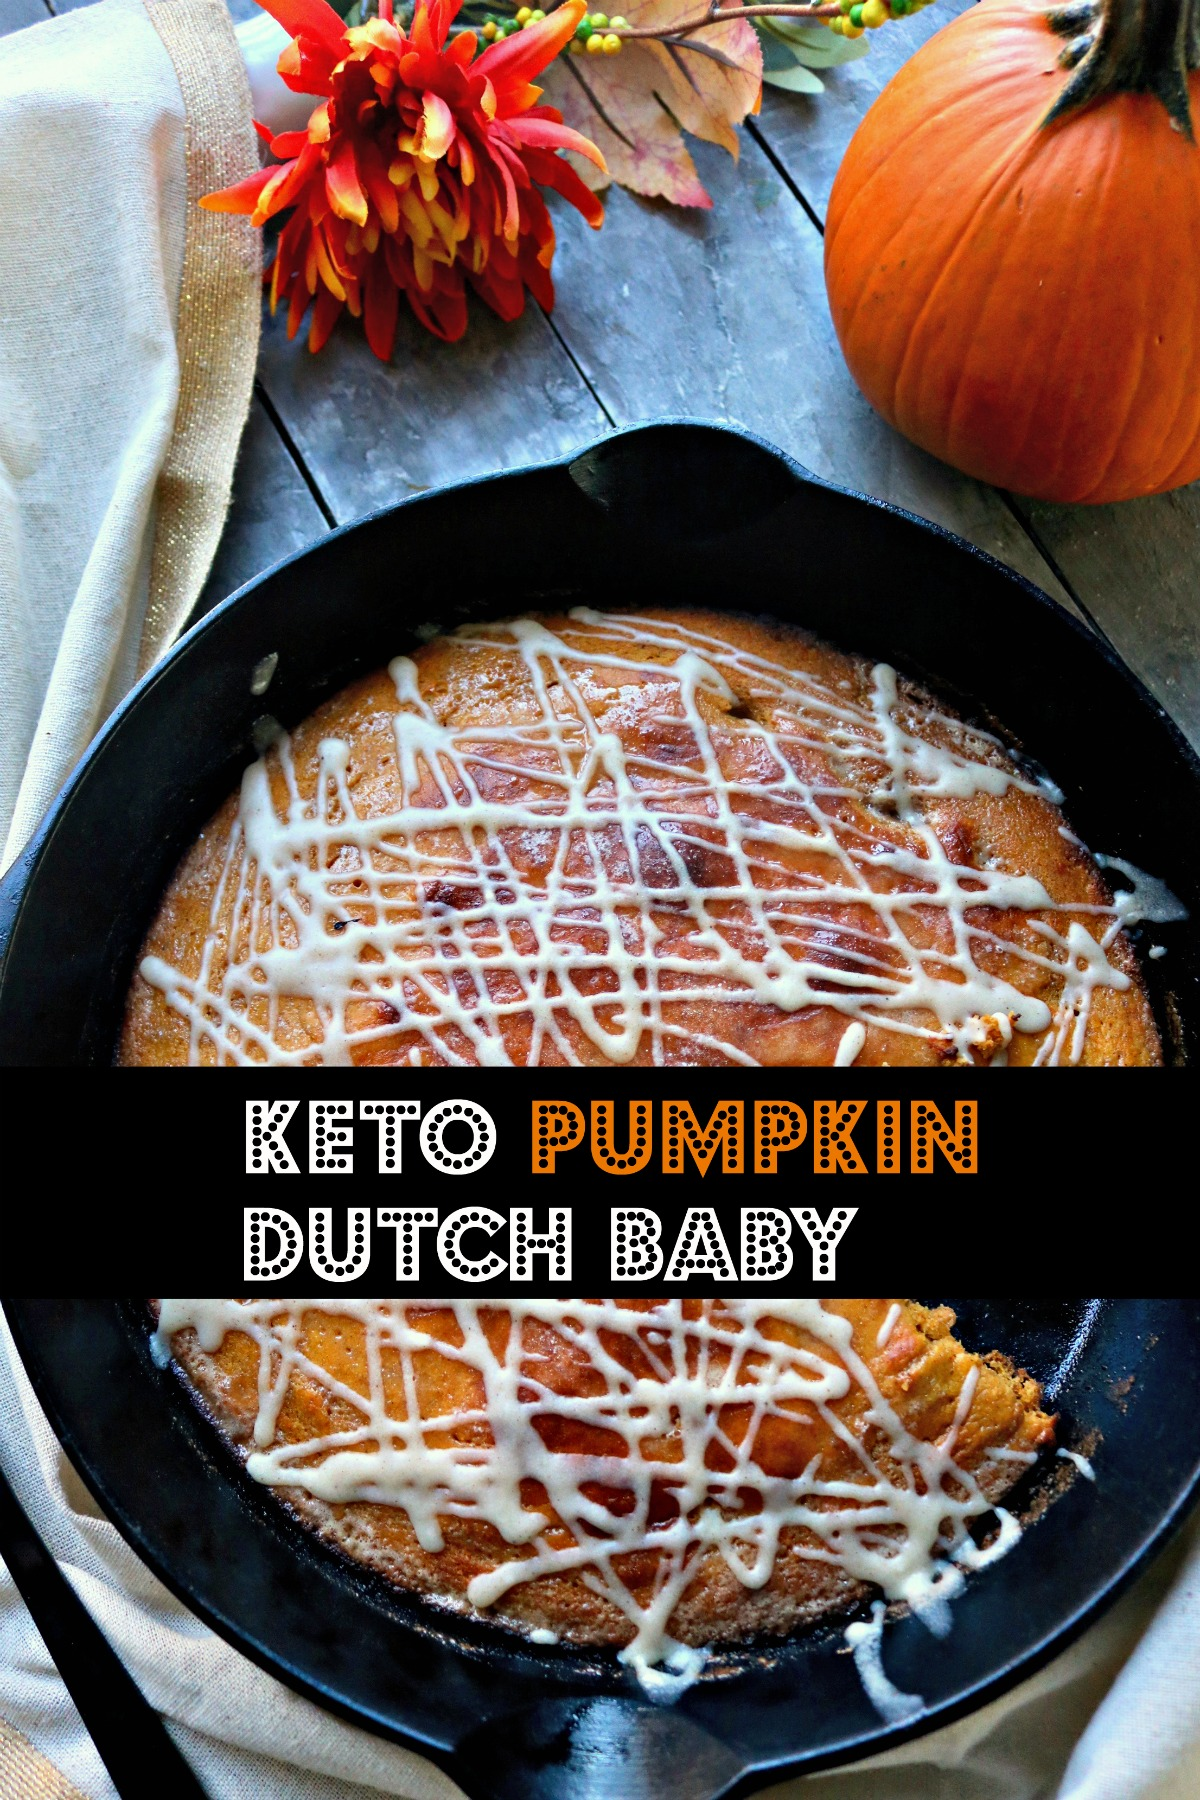 Brunch, Breakfast Keto Pumpkin Dutch Baby with Cream Cheese Glaze. Low Carb, Almond Flour, Easy mix, bake for 15 minutes. #ketodutchbaby #ketopumpkindutchbaby #spinachtiger #lowcarbketobreakfast #ketobreakfast #ketopumpkinrecipe #ketobakedpancake